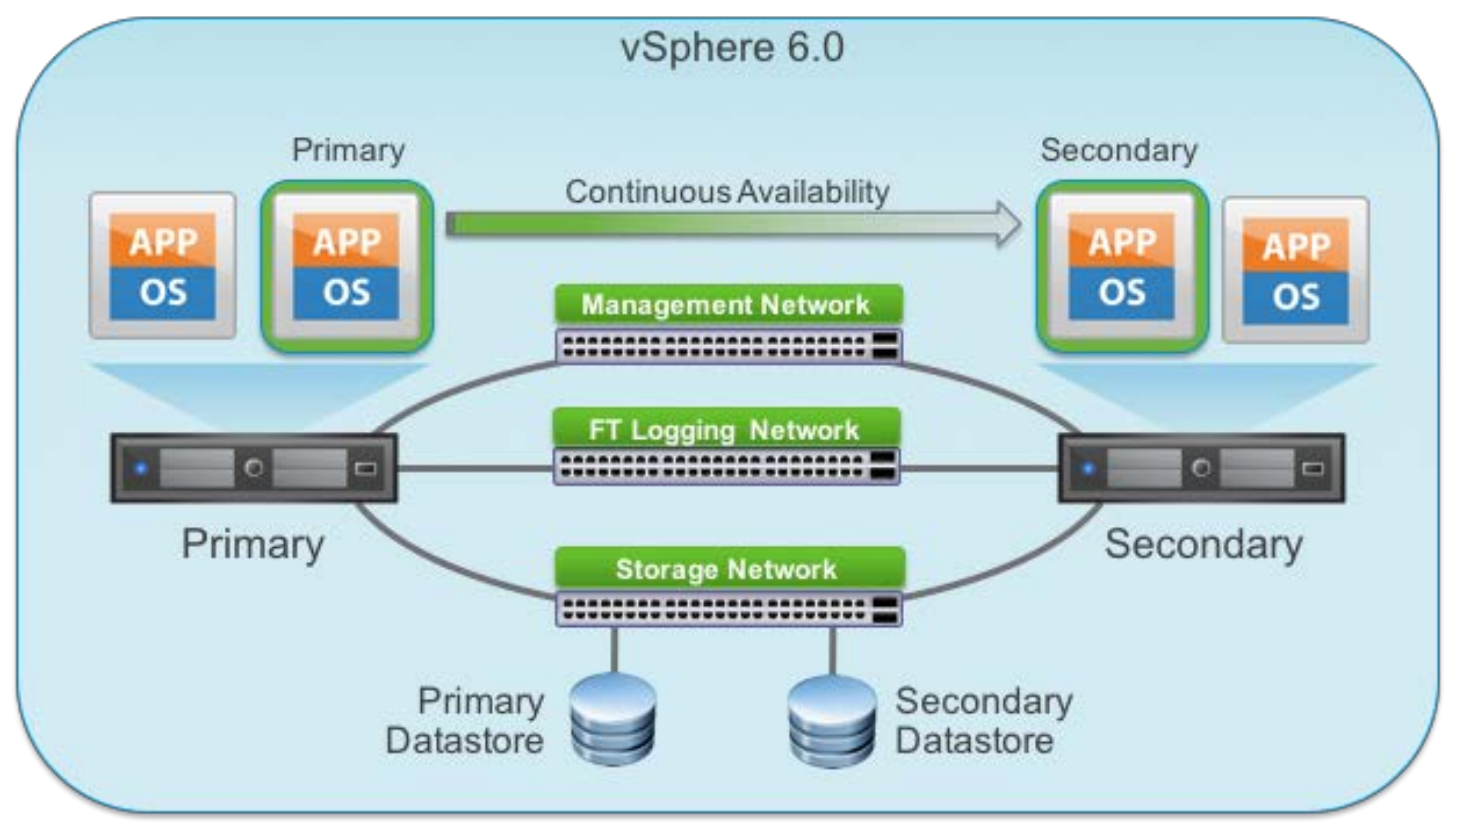 vmware vsphere 6 fault tolerance architecture and